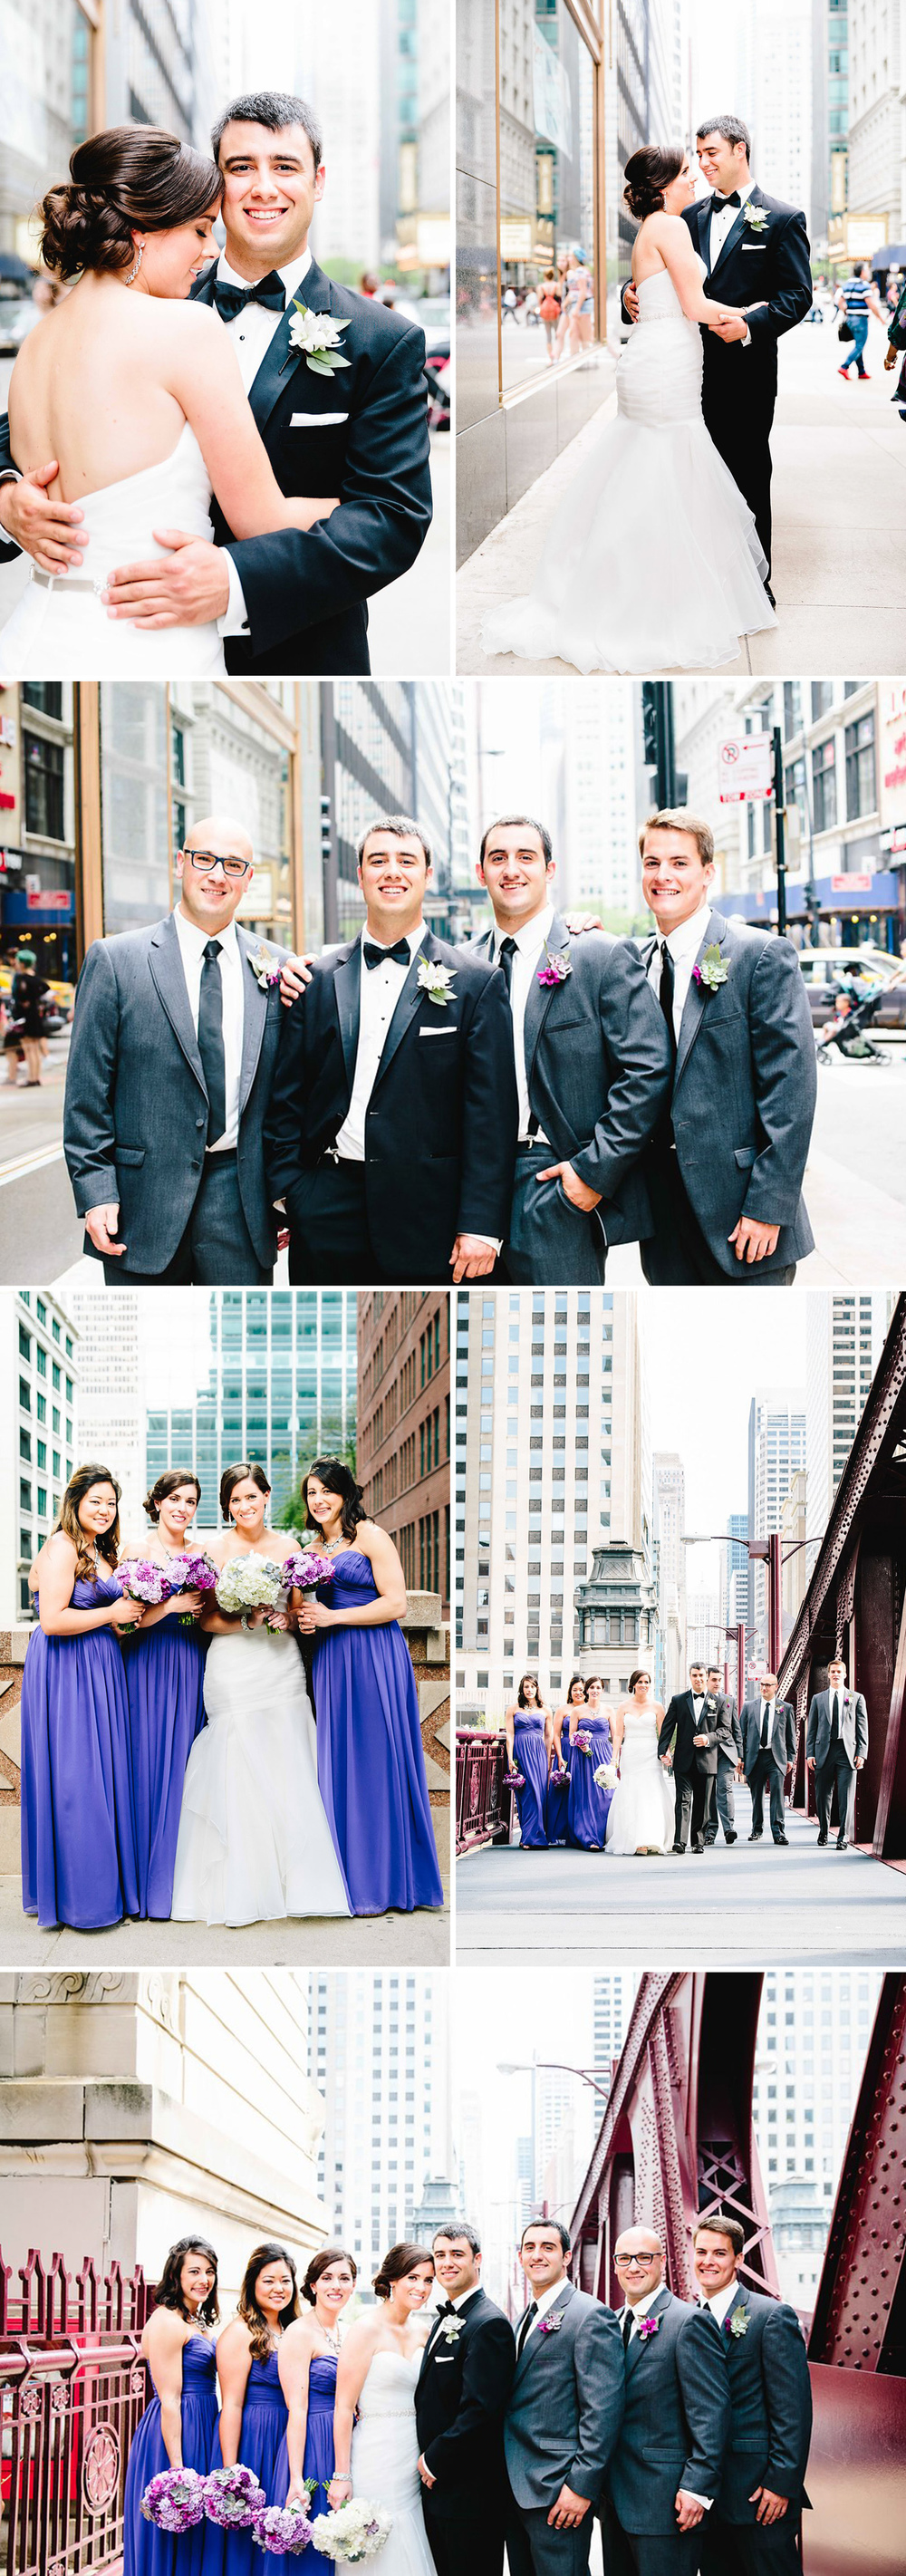 chicago-fine-art-wedding-photography-cassat5